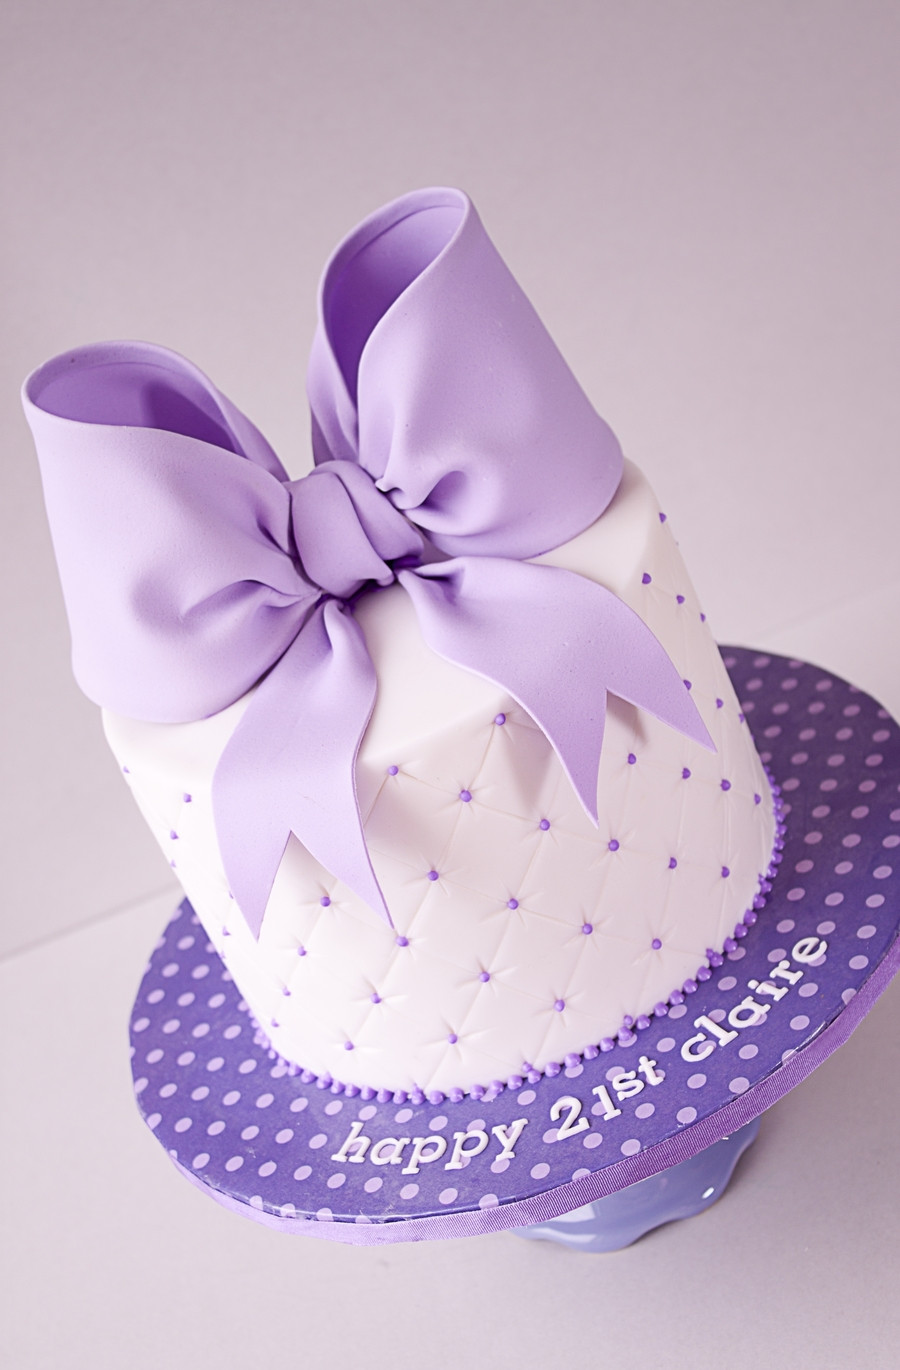 Best ideas about 21st Birthday Cake . Save or Pin 21St Birthday Cake CakeCentral Now.